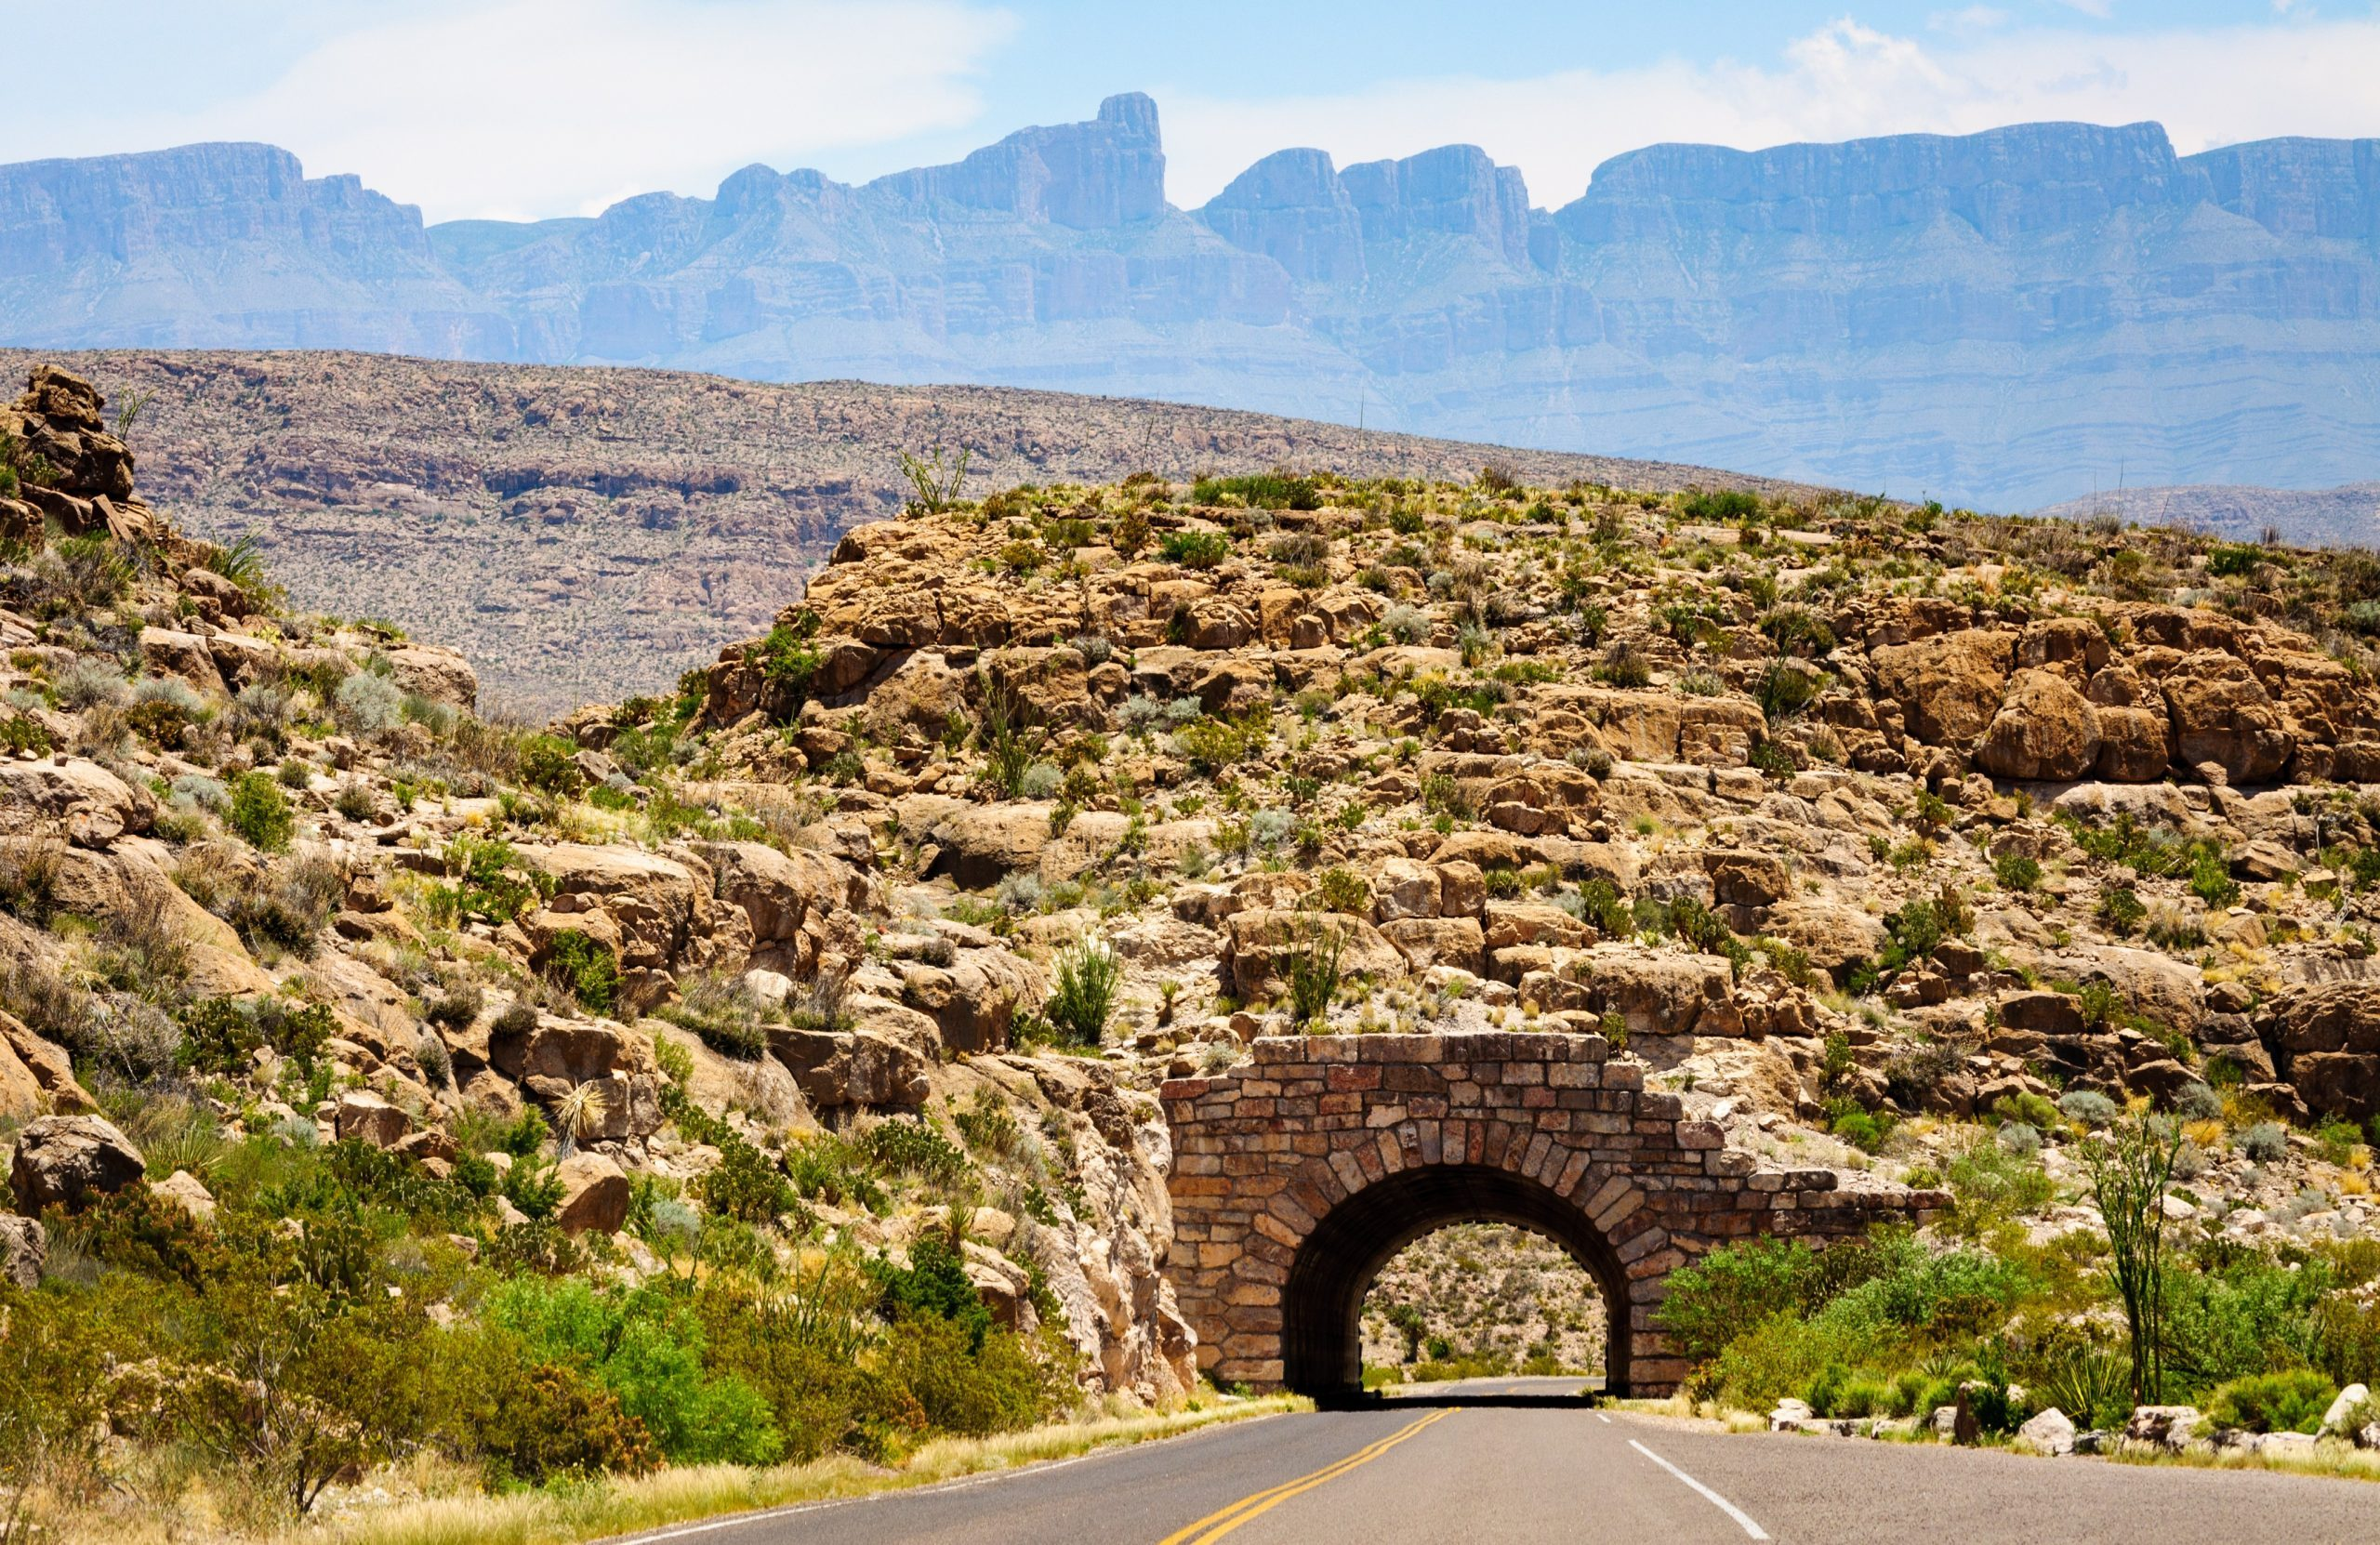 Tunnel with Mountains at Big Bend National Park